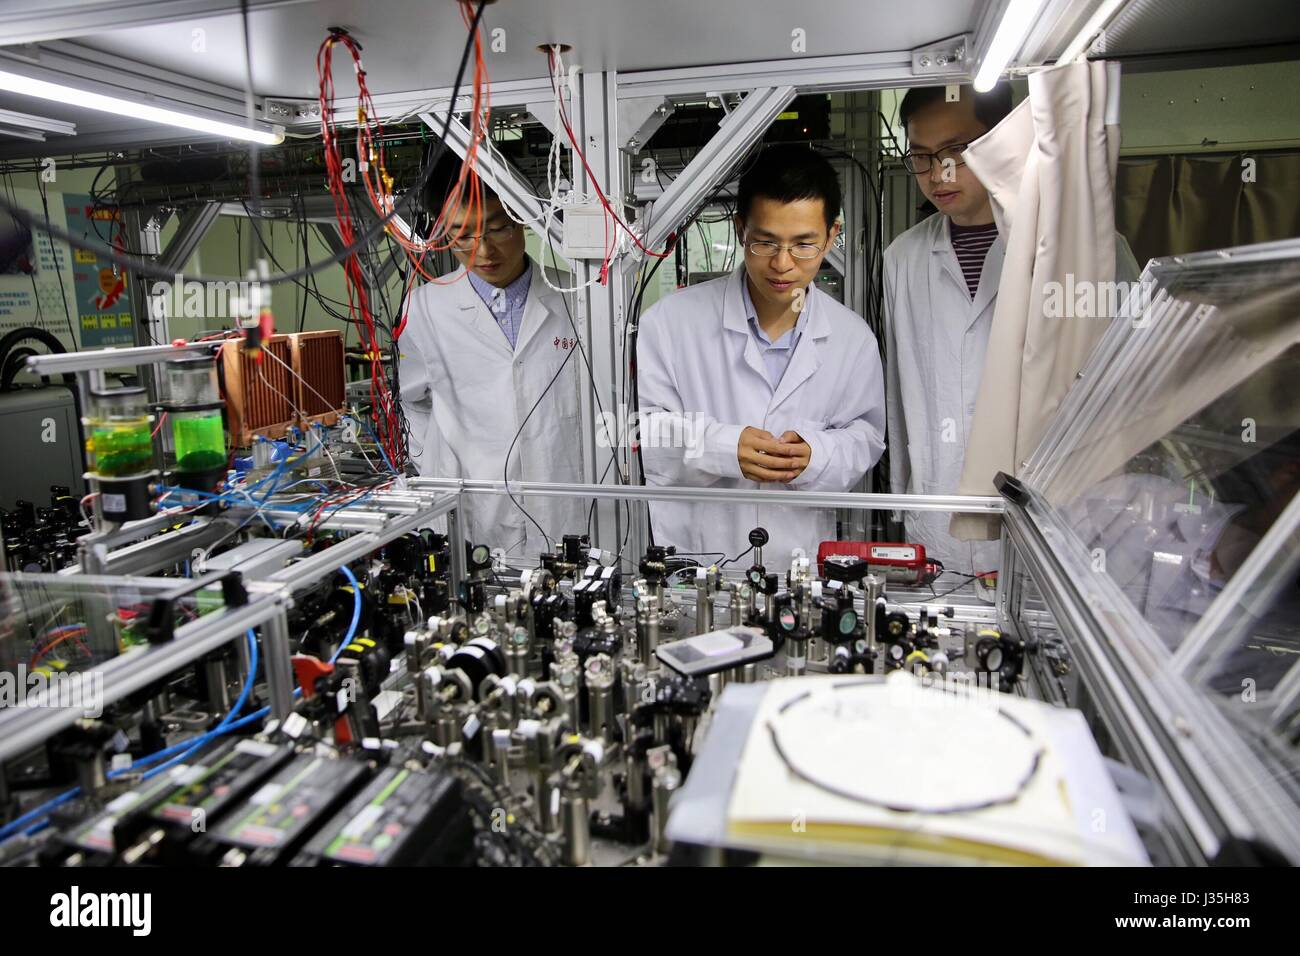 Shanghai, China. 3rd May, 2017. Professor Lu Chaoyang (C) of the University of Science and Technology of China checks - Stock Image